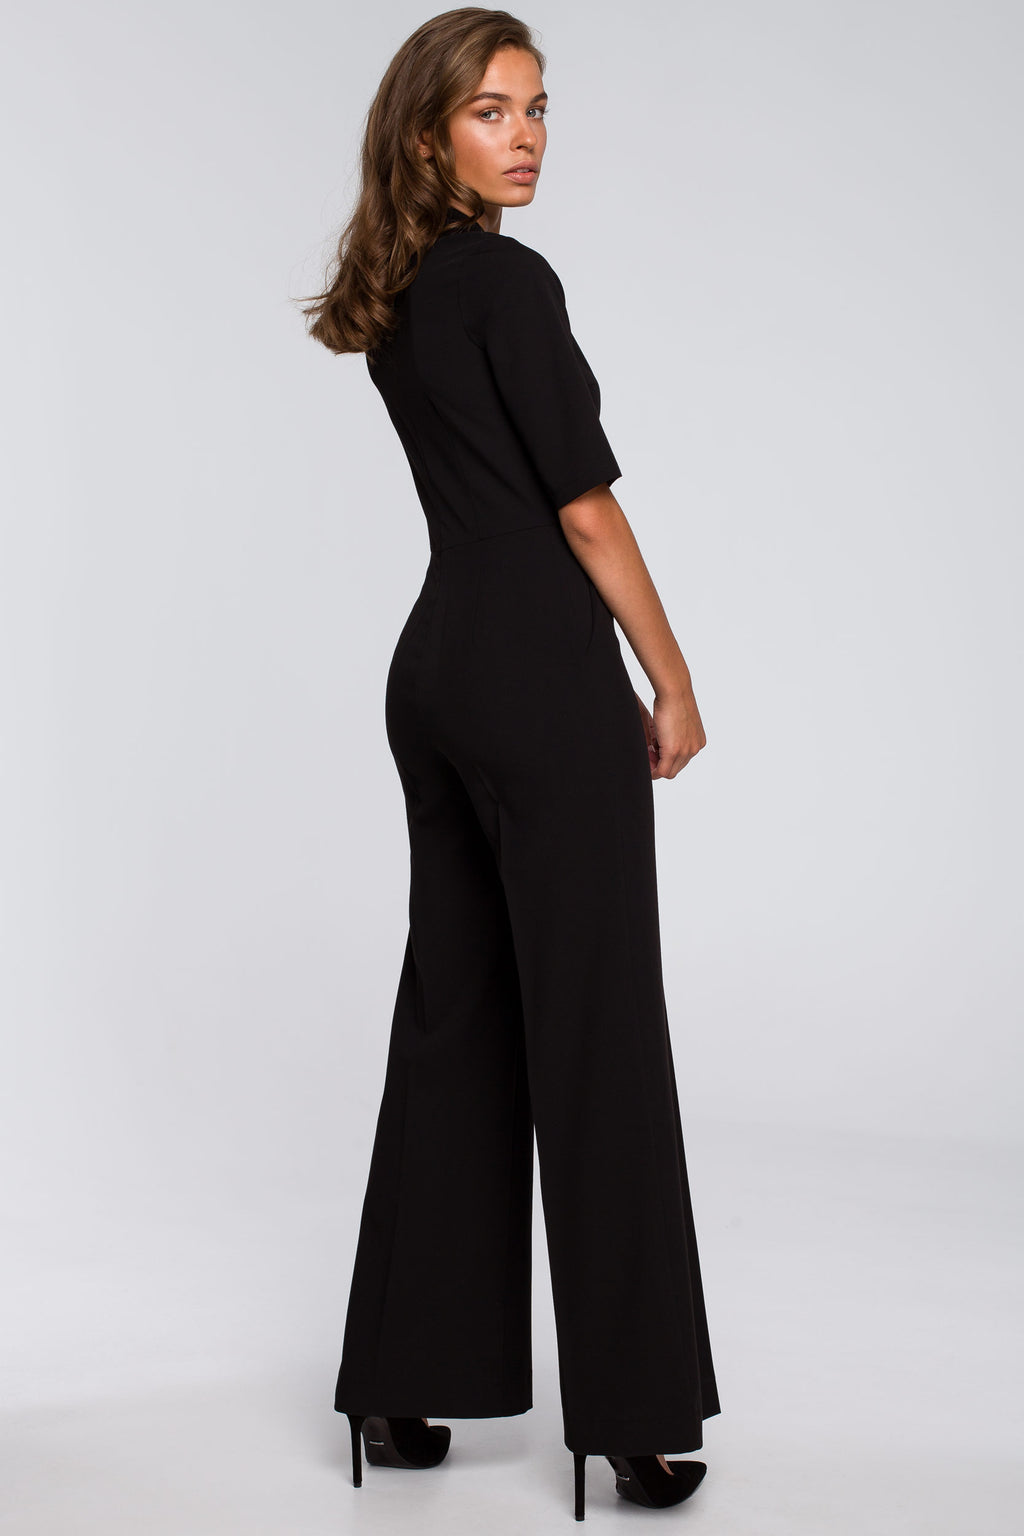 Black Wide Leg Jumpsuit With Tied Neck - So Chic Boutique